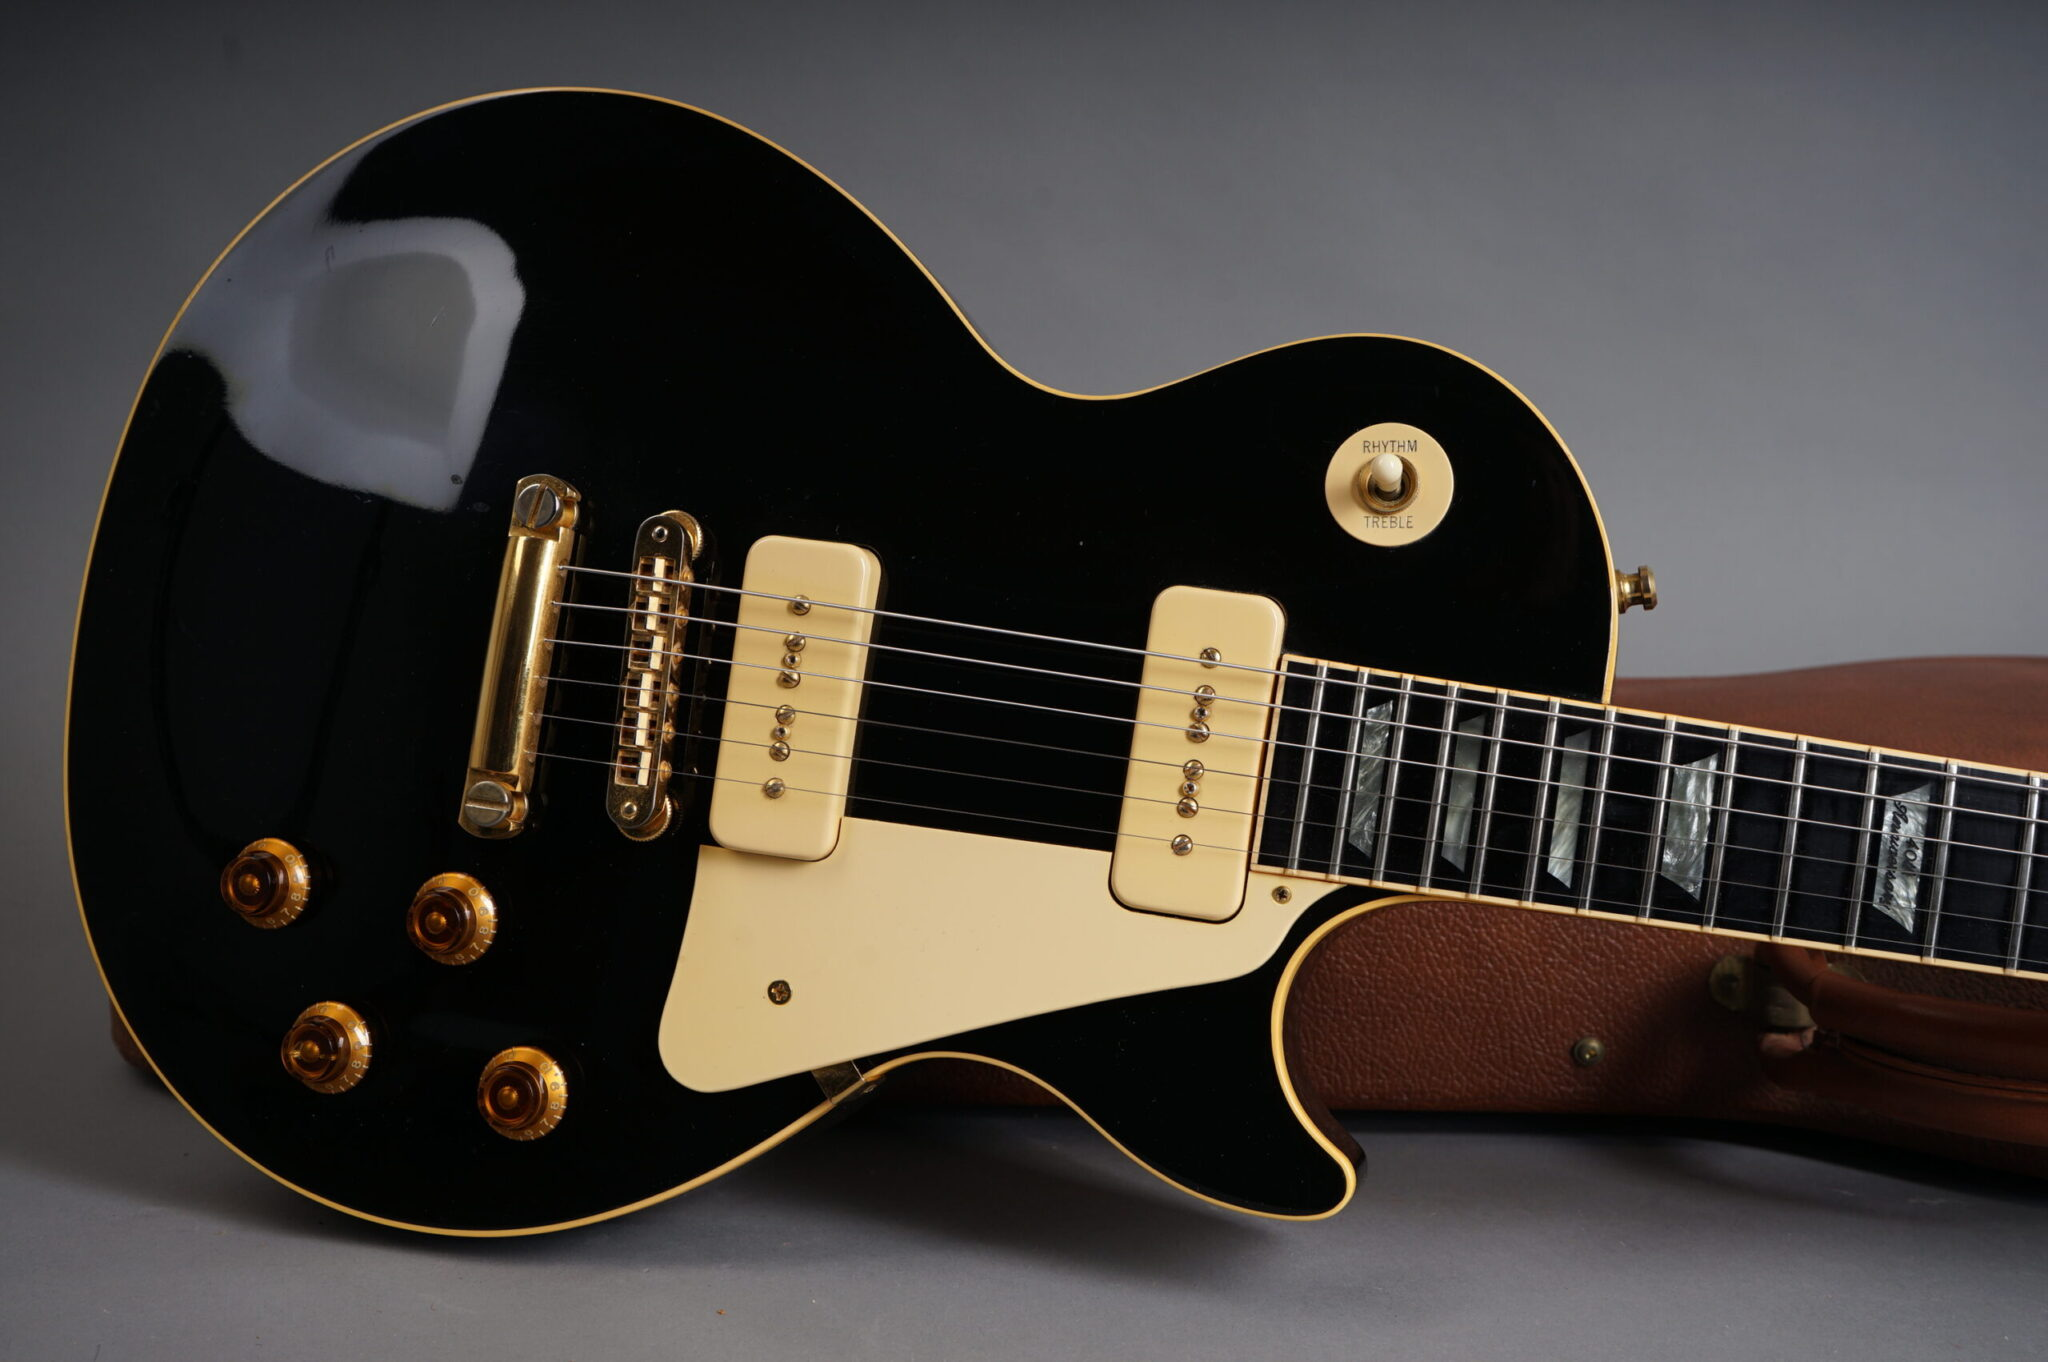 https://guitarpoint.de/app/uploads/products/1991-gibson-les-paul-anniversary-ebony/1991-Gibson-Les-Paul-40th-Anniversary-Ebony-90661559-7-scaled-2048x1362.jpg